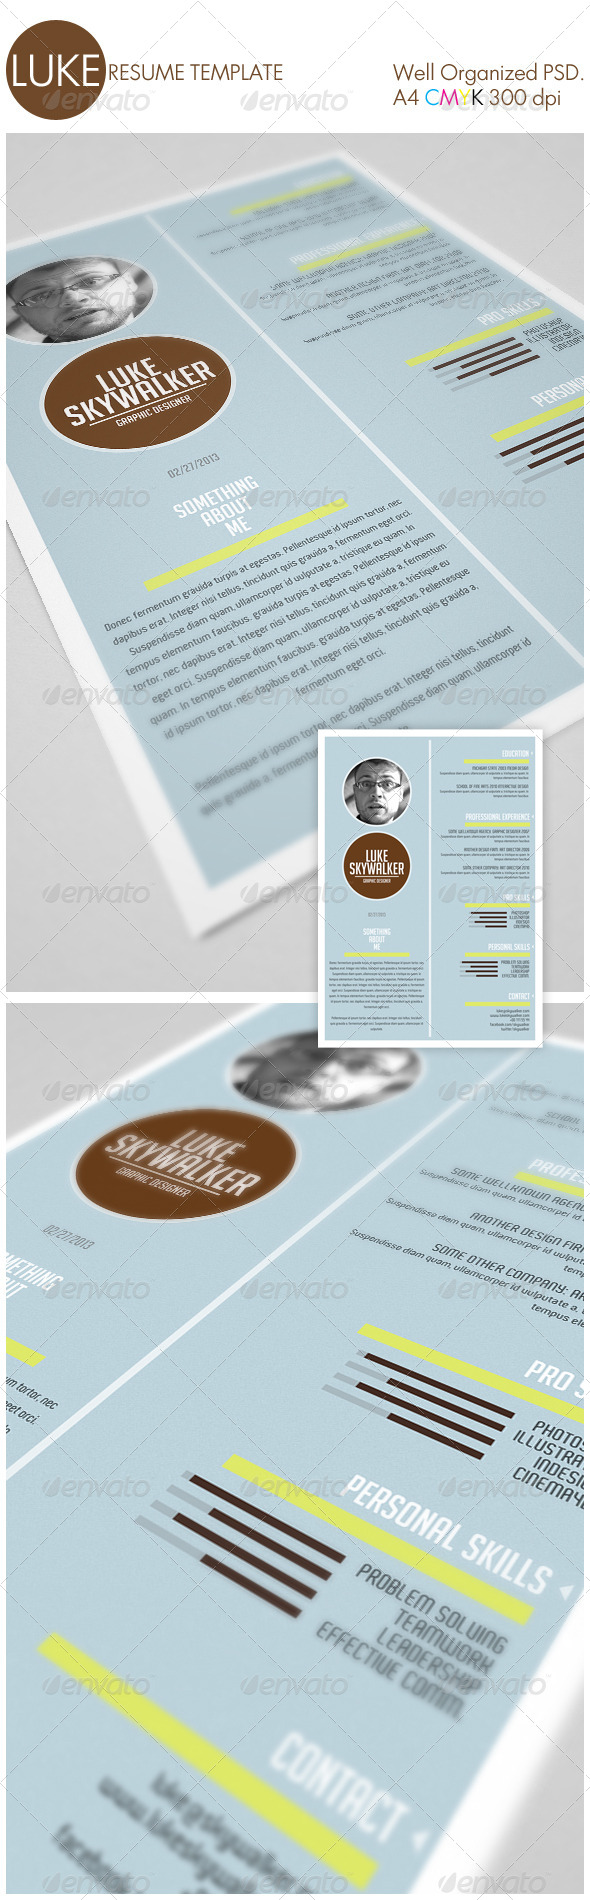 Luke Resume Template - Resumes Stationery